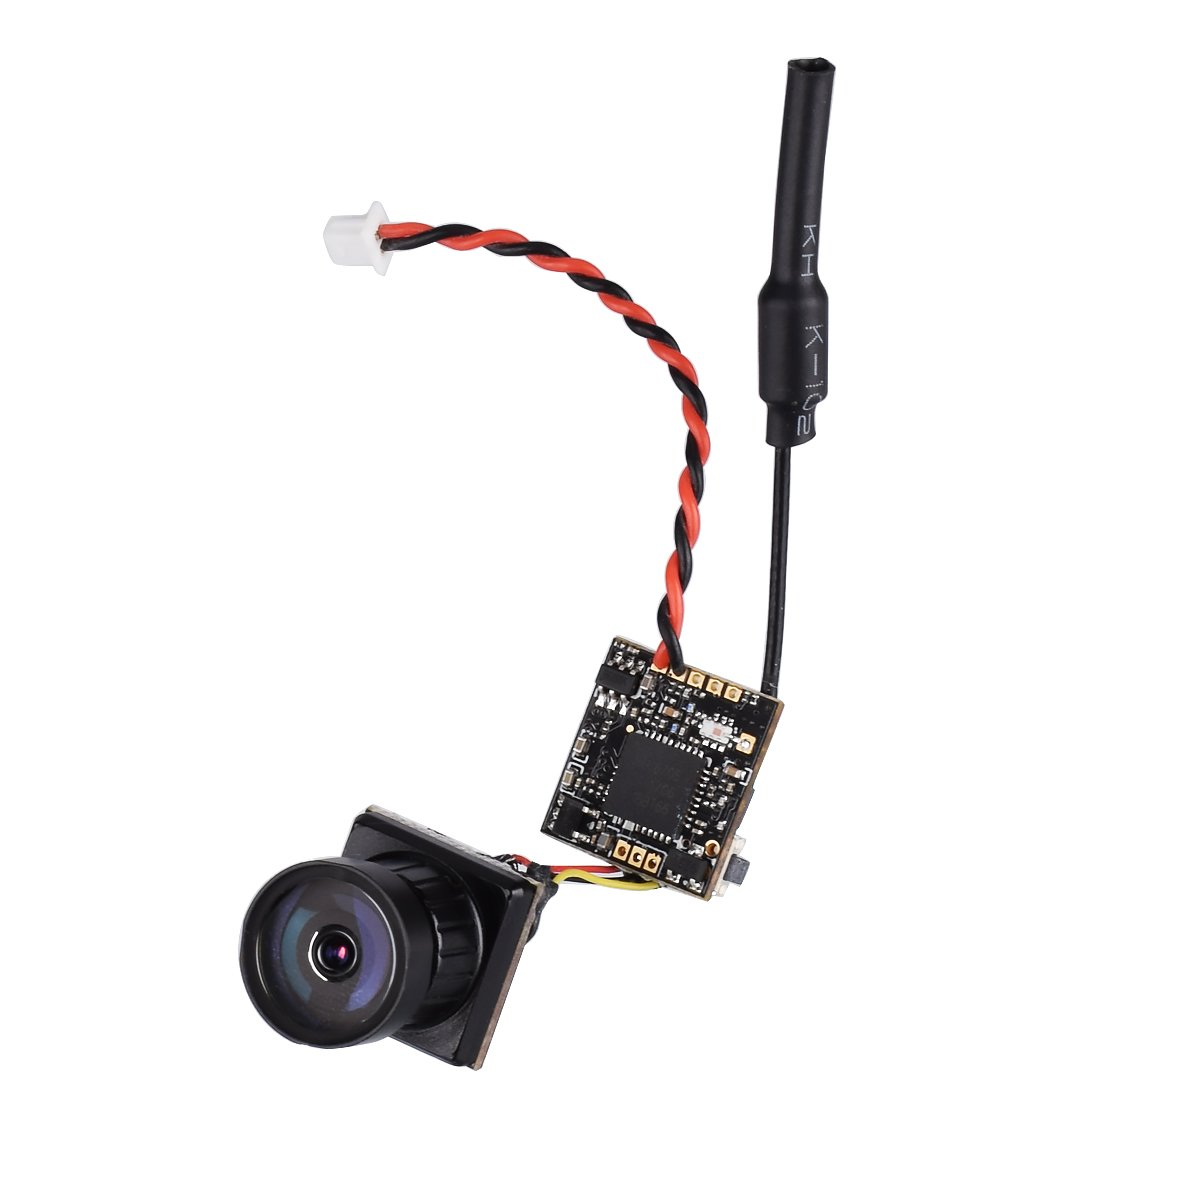 "Caddx Firefly 1/3"" CMOS 1200TVL 2.1mm Lens FPV Camera(16:9)"